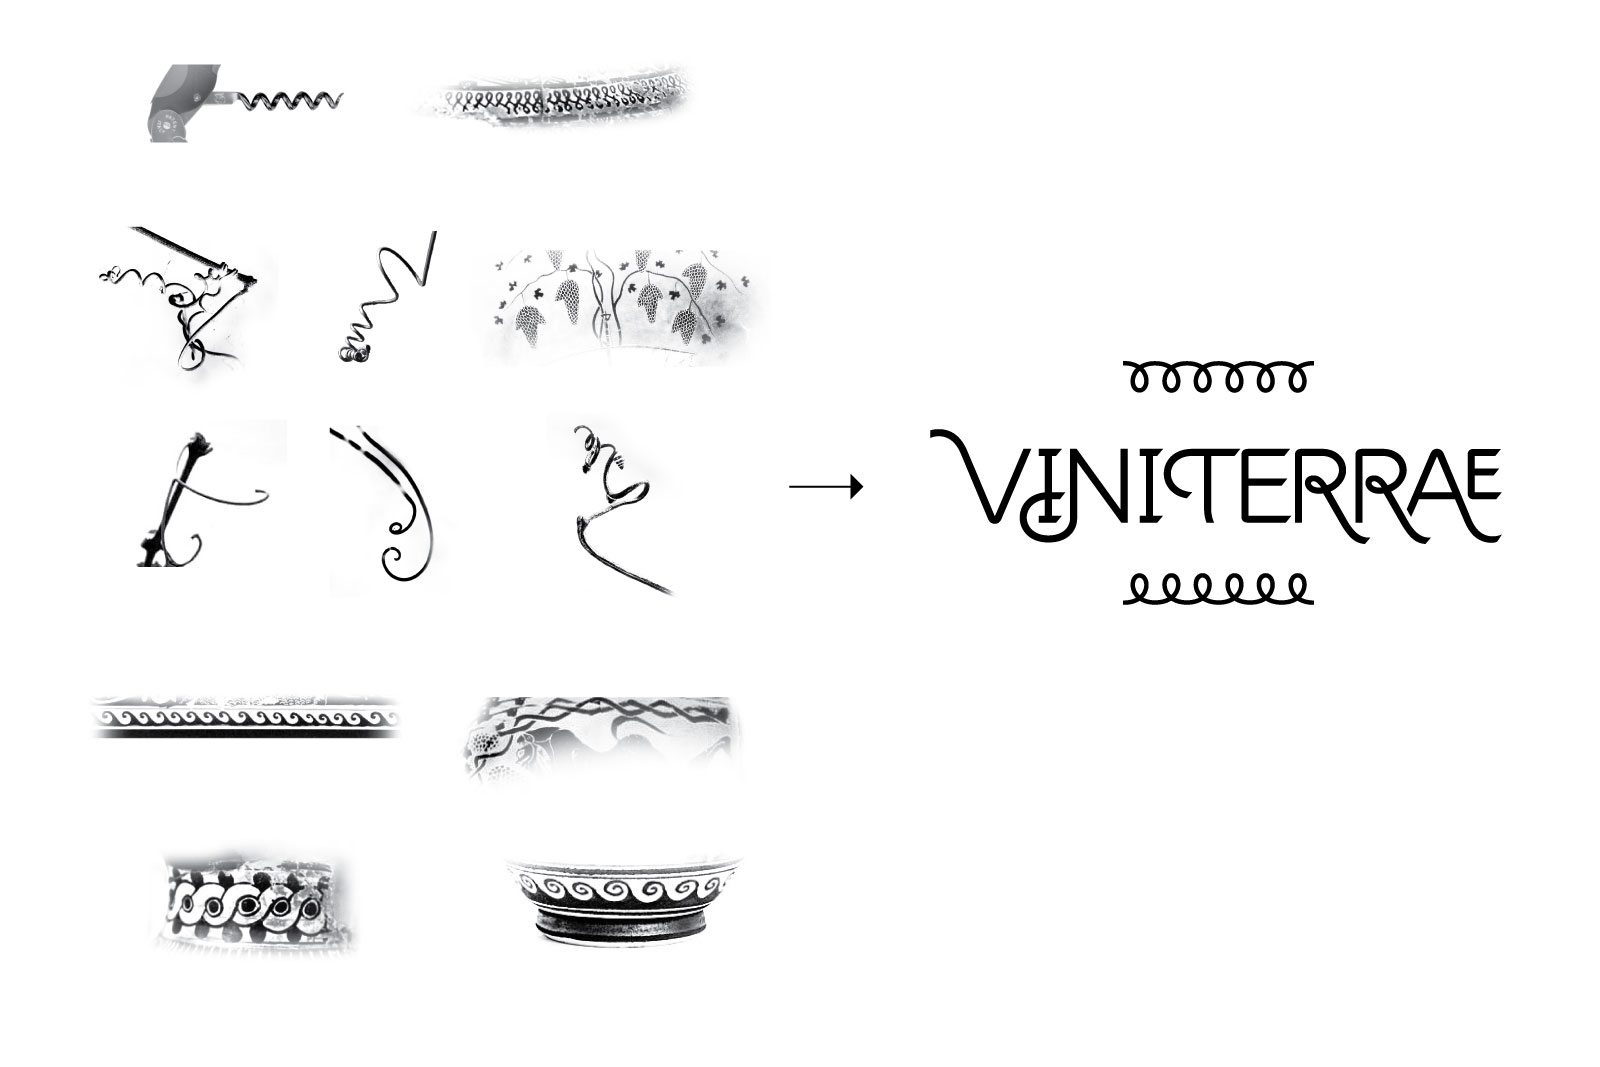 Logo Viniterrae in progress